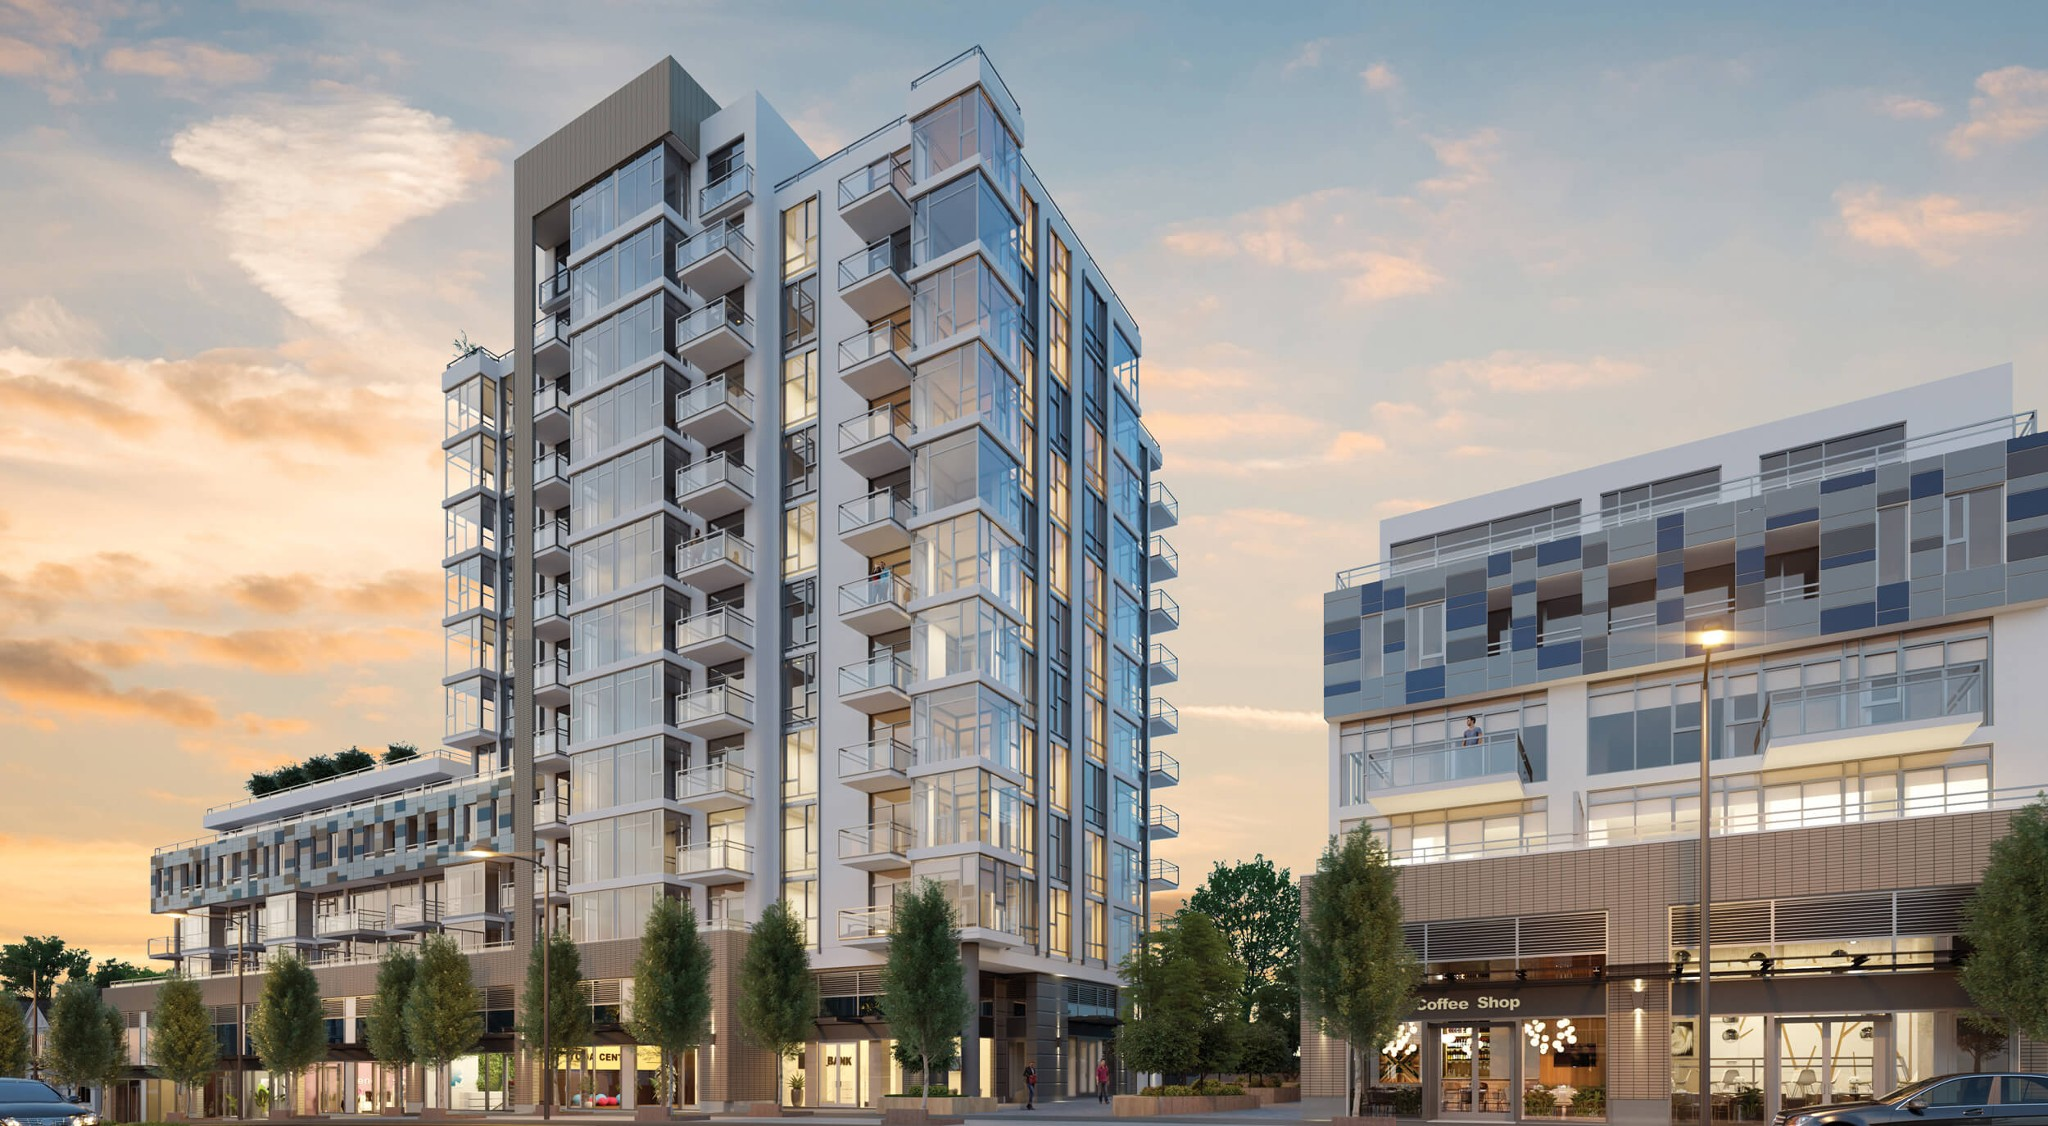 FEATURED LISTING: Kingsway Assignment Listing Vancouver